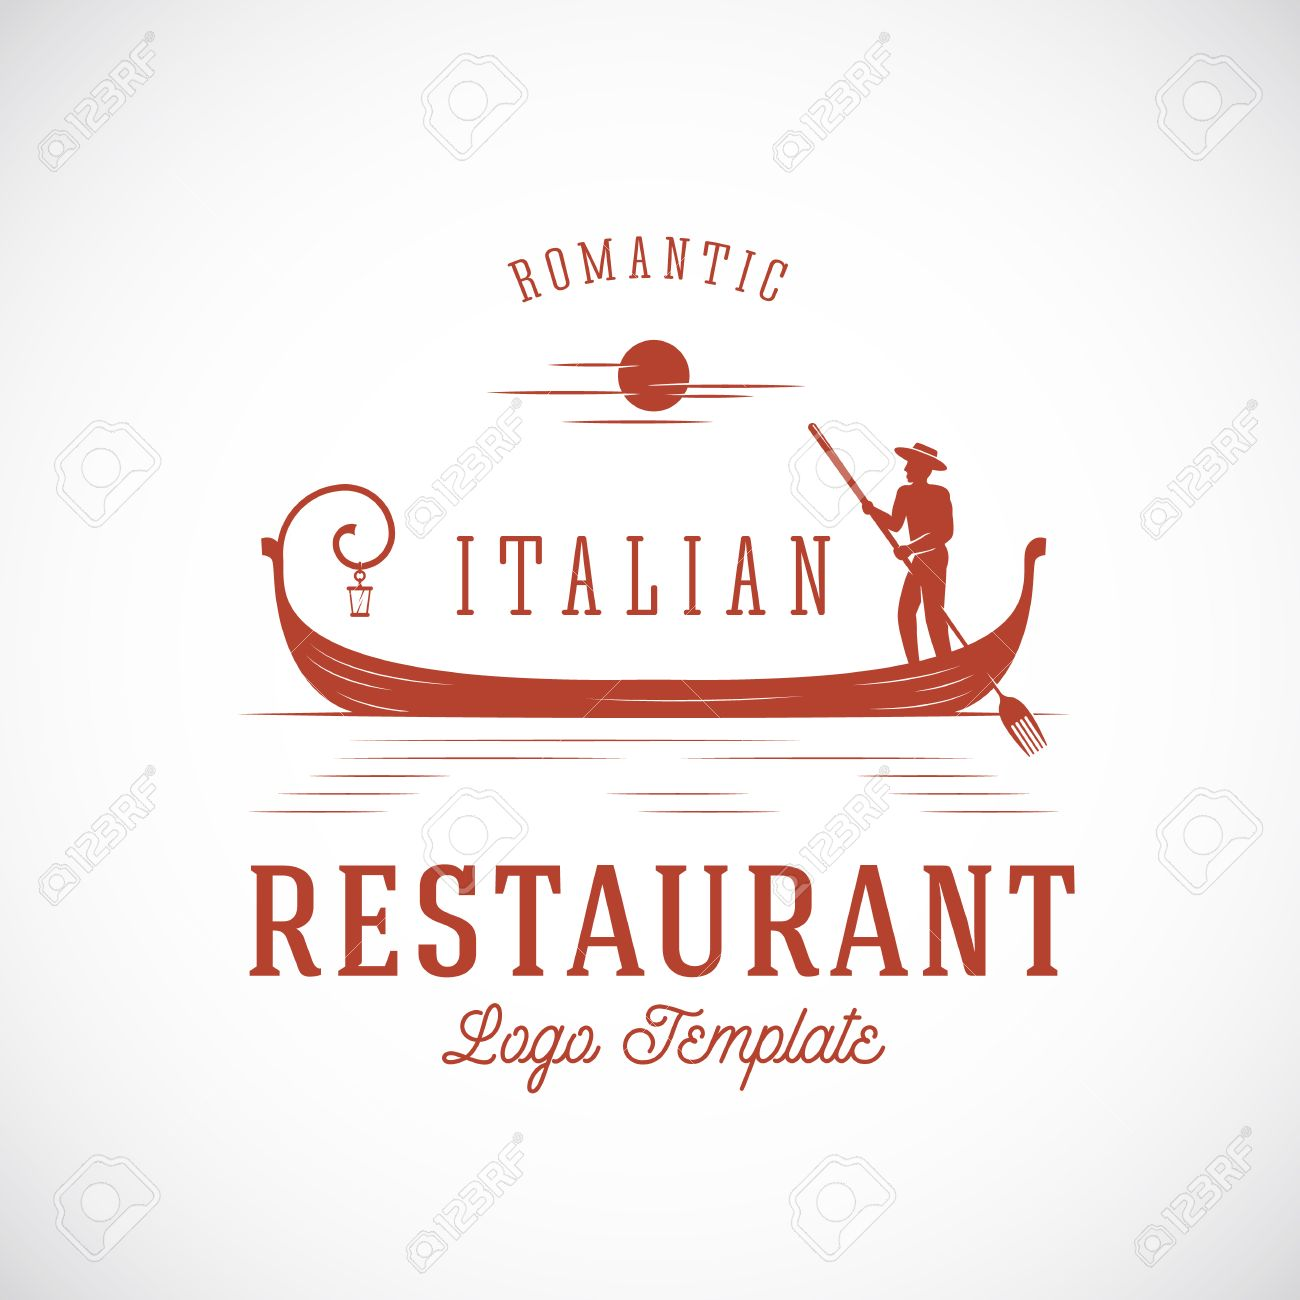 Italian Restaurant Abstract Vector Concept Logo Template Isolated Royalty Free Cliparts Vectors And Stock Illustration Image 44486010